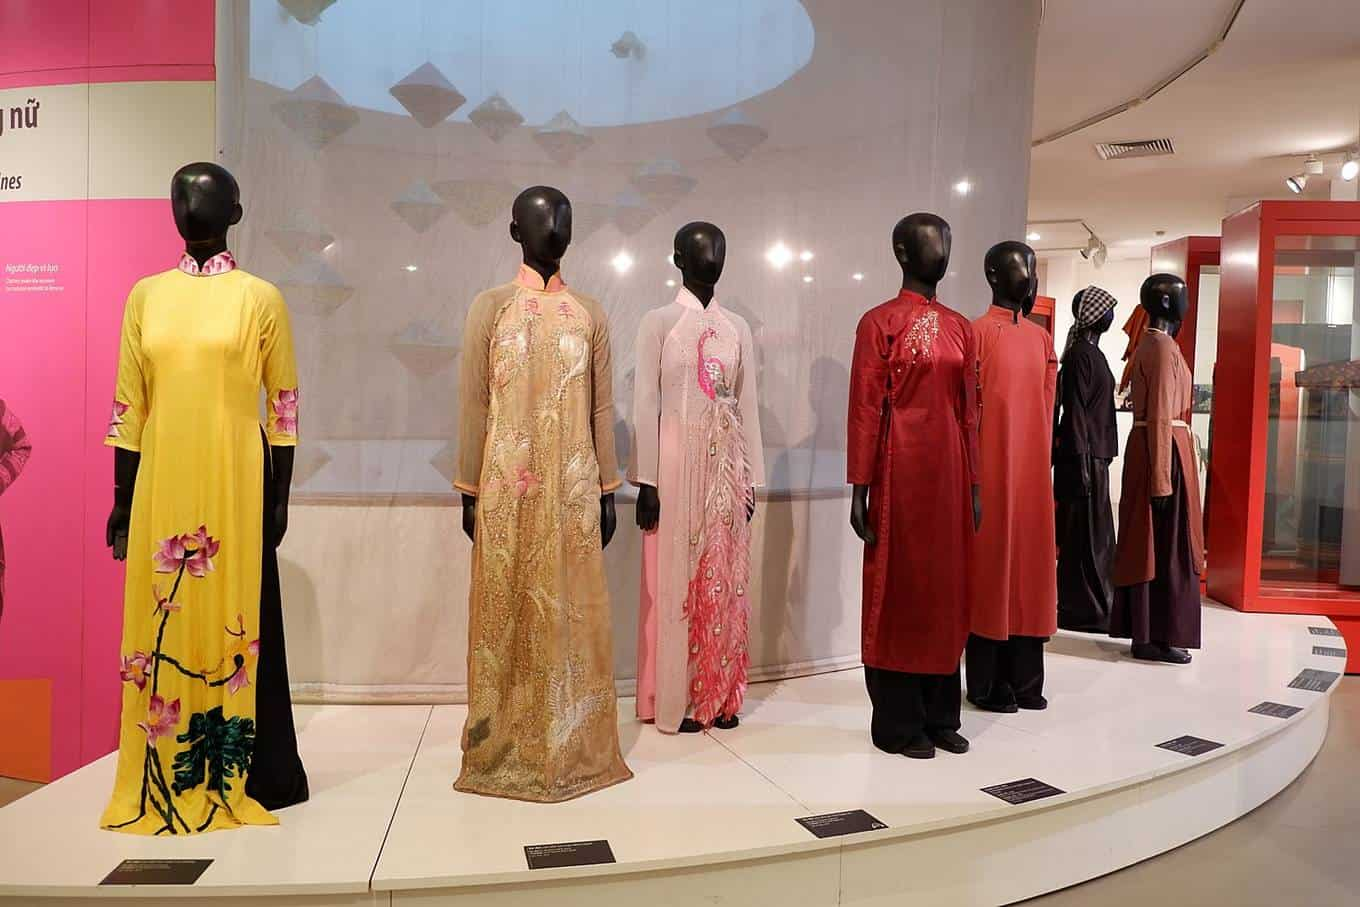 Women fashion in Vietnamese women's museum